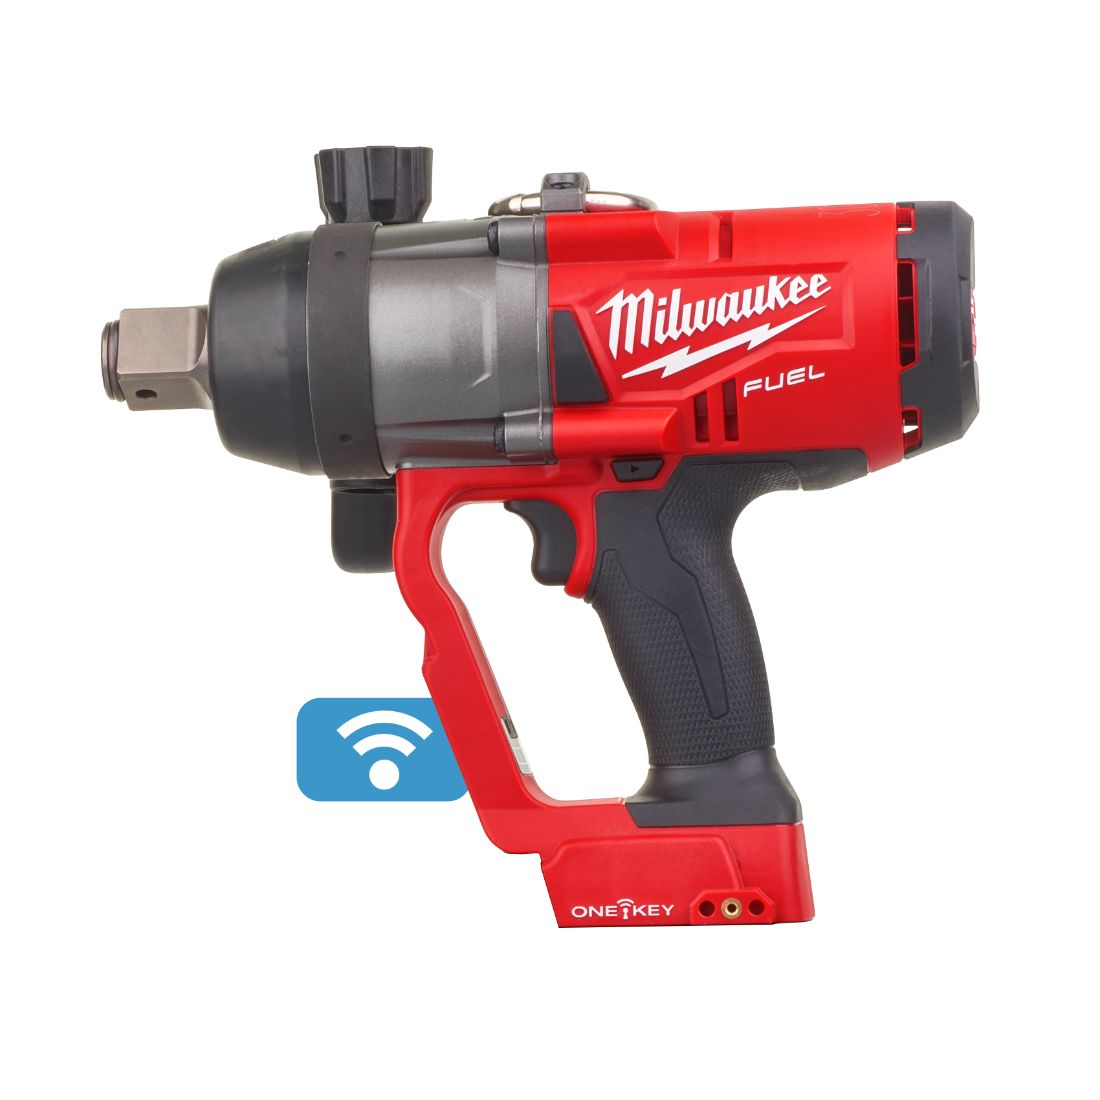 M18 FUEL ONE-KEY High Torque Impact Wrench 1 inch (Tool Only)